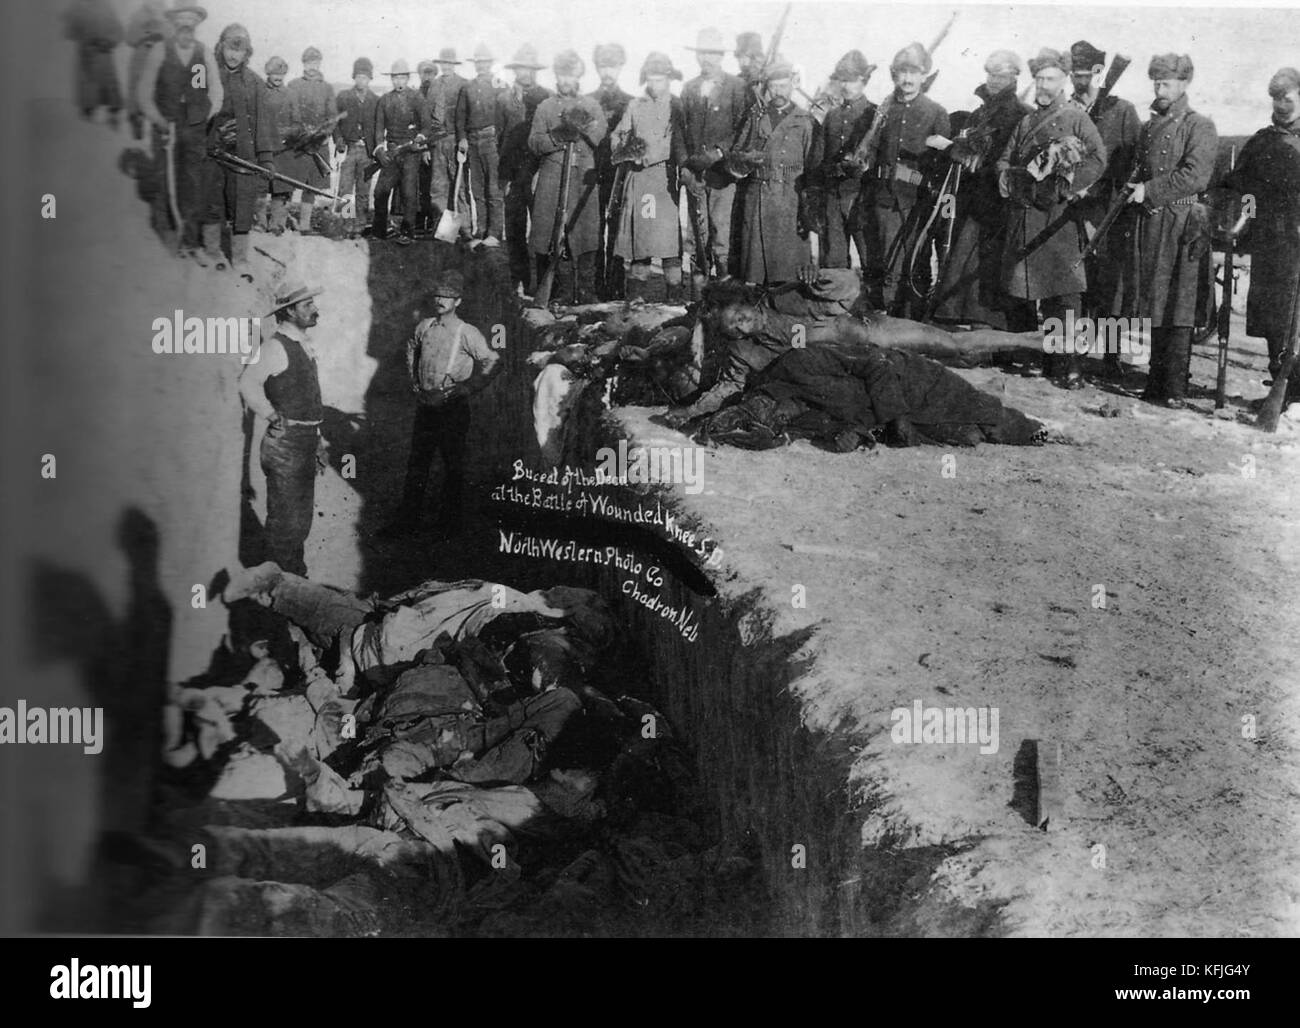 the wounded knee massacre The intermittent war between the united states and the plains indians that stretched across some three decades after the civil war came to an end on december 29, 1890, at the pine ridge reservation in south dakota the events leading up to its final act — the wounded knee massacre — had been.